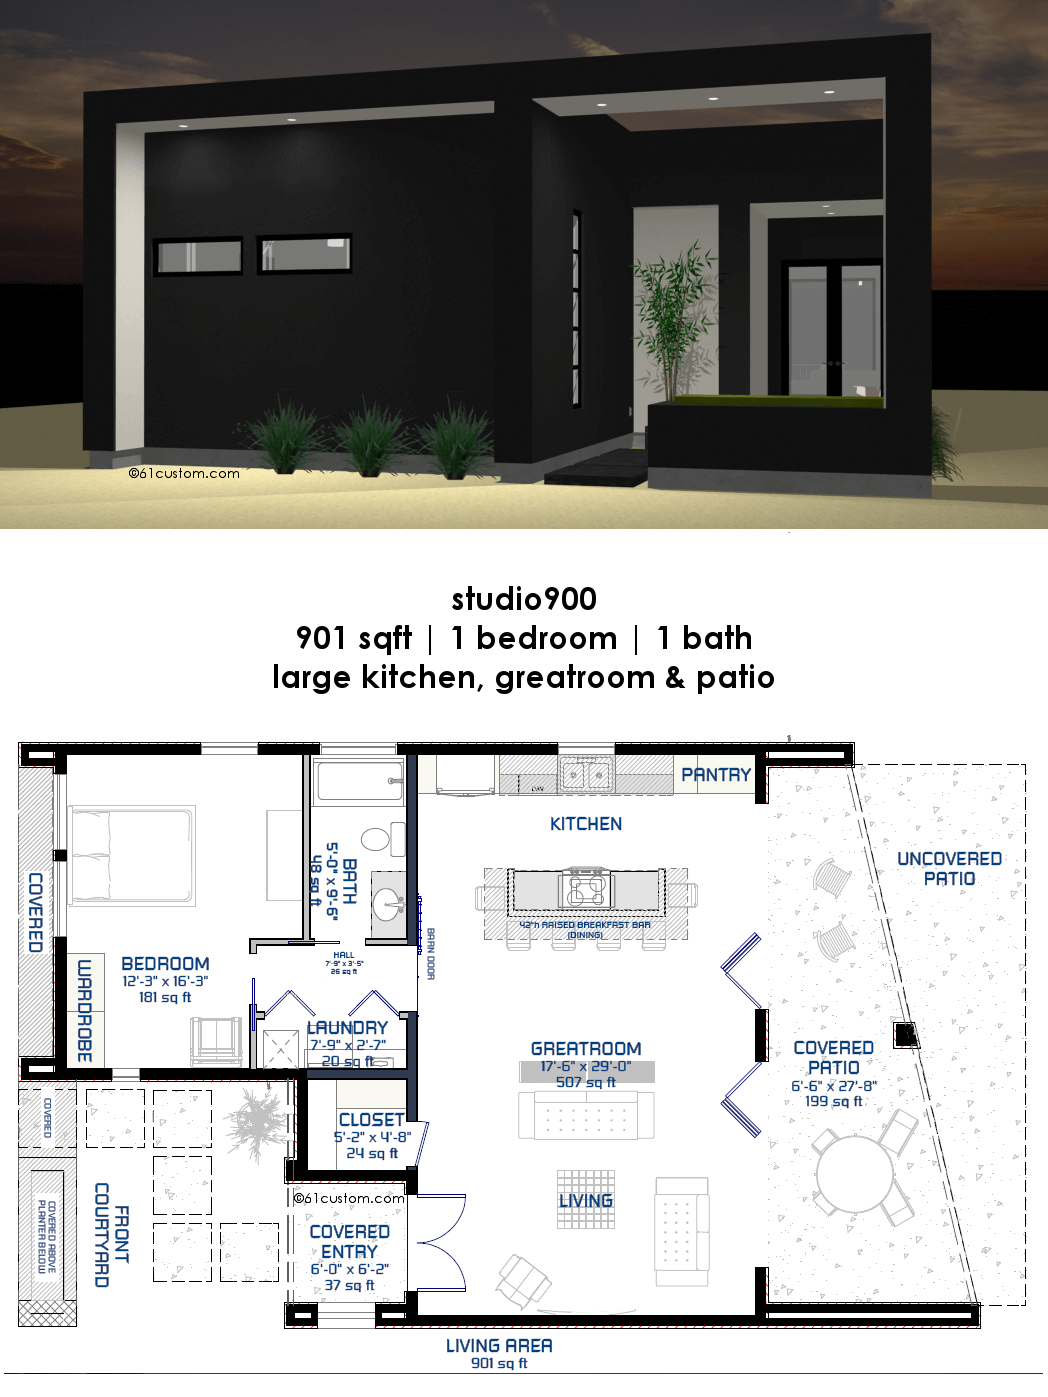 Studio900 small modern house plan with courtyard 61custom for Small contemporary home plans